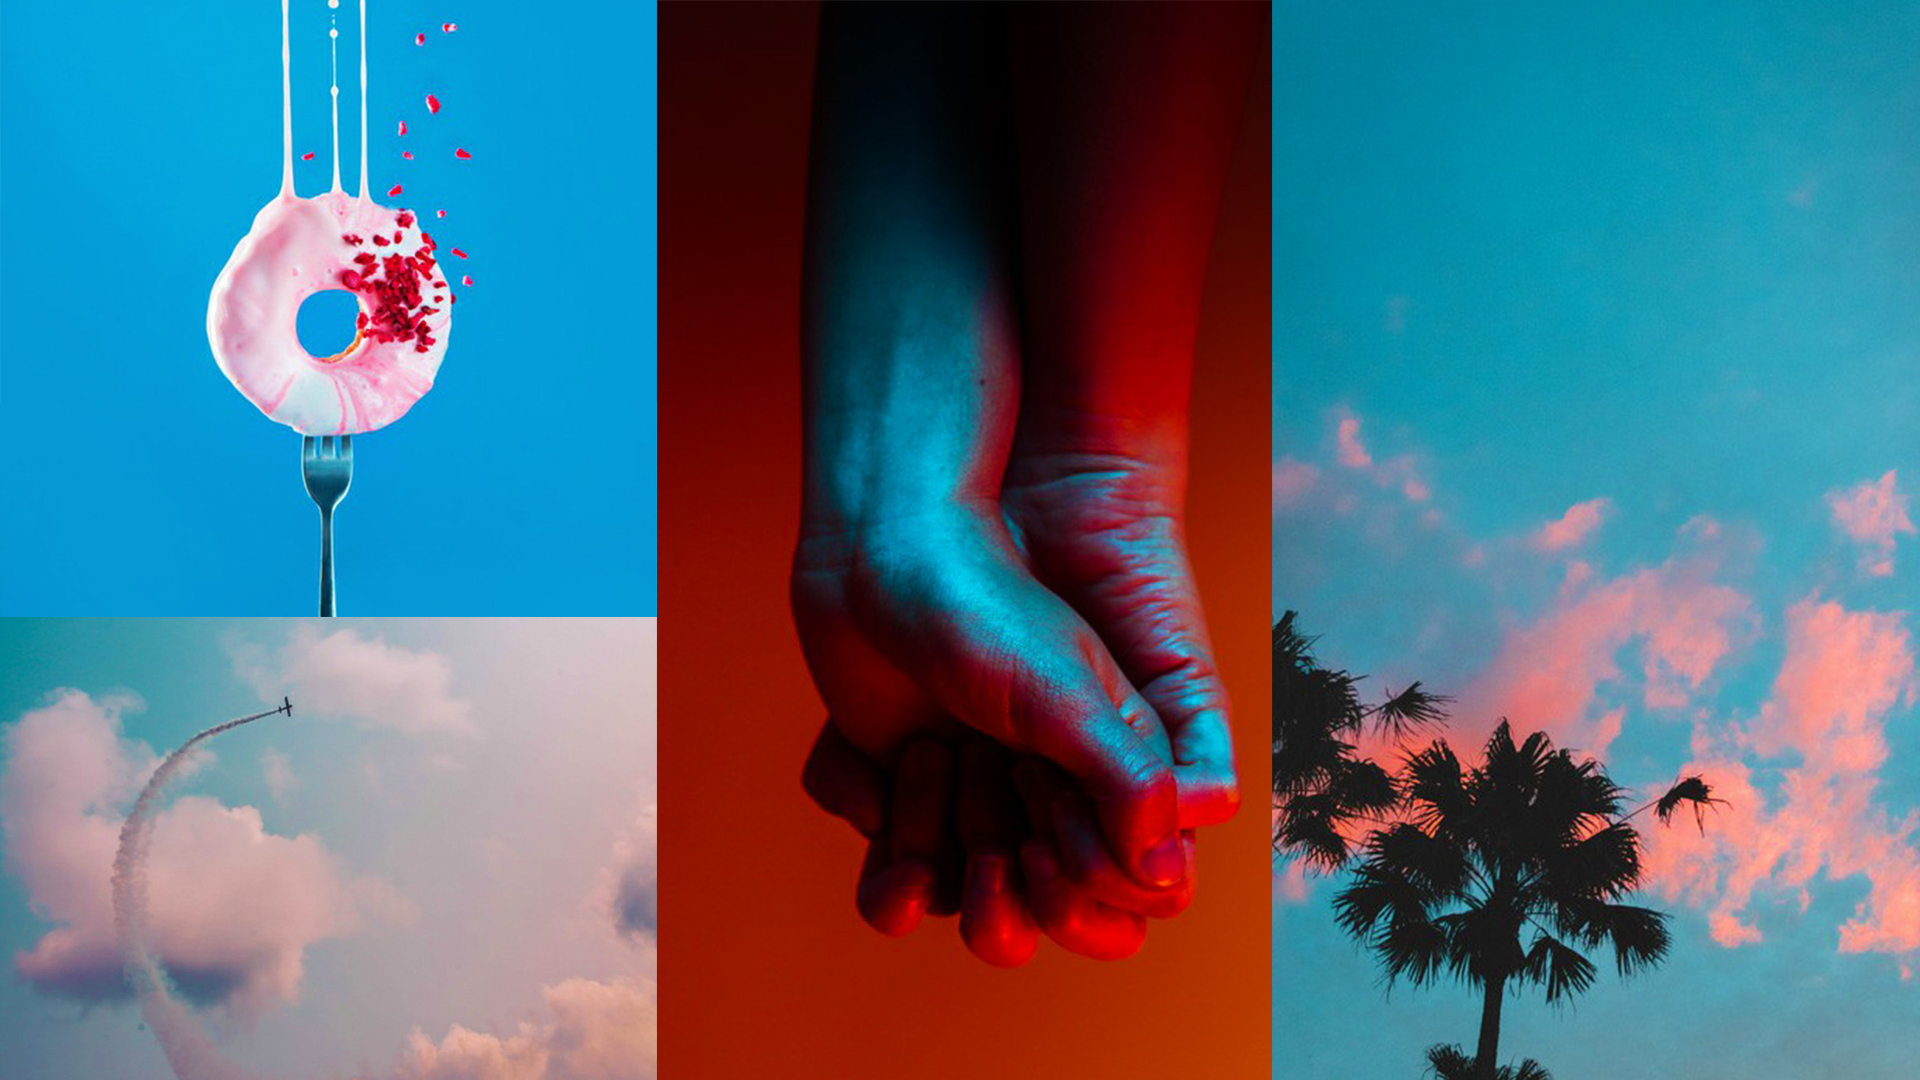 How to Use Complementary Colors in Photography